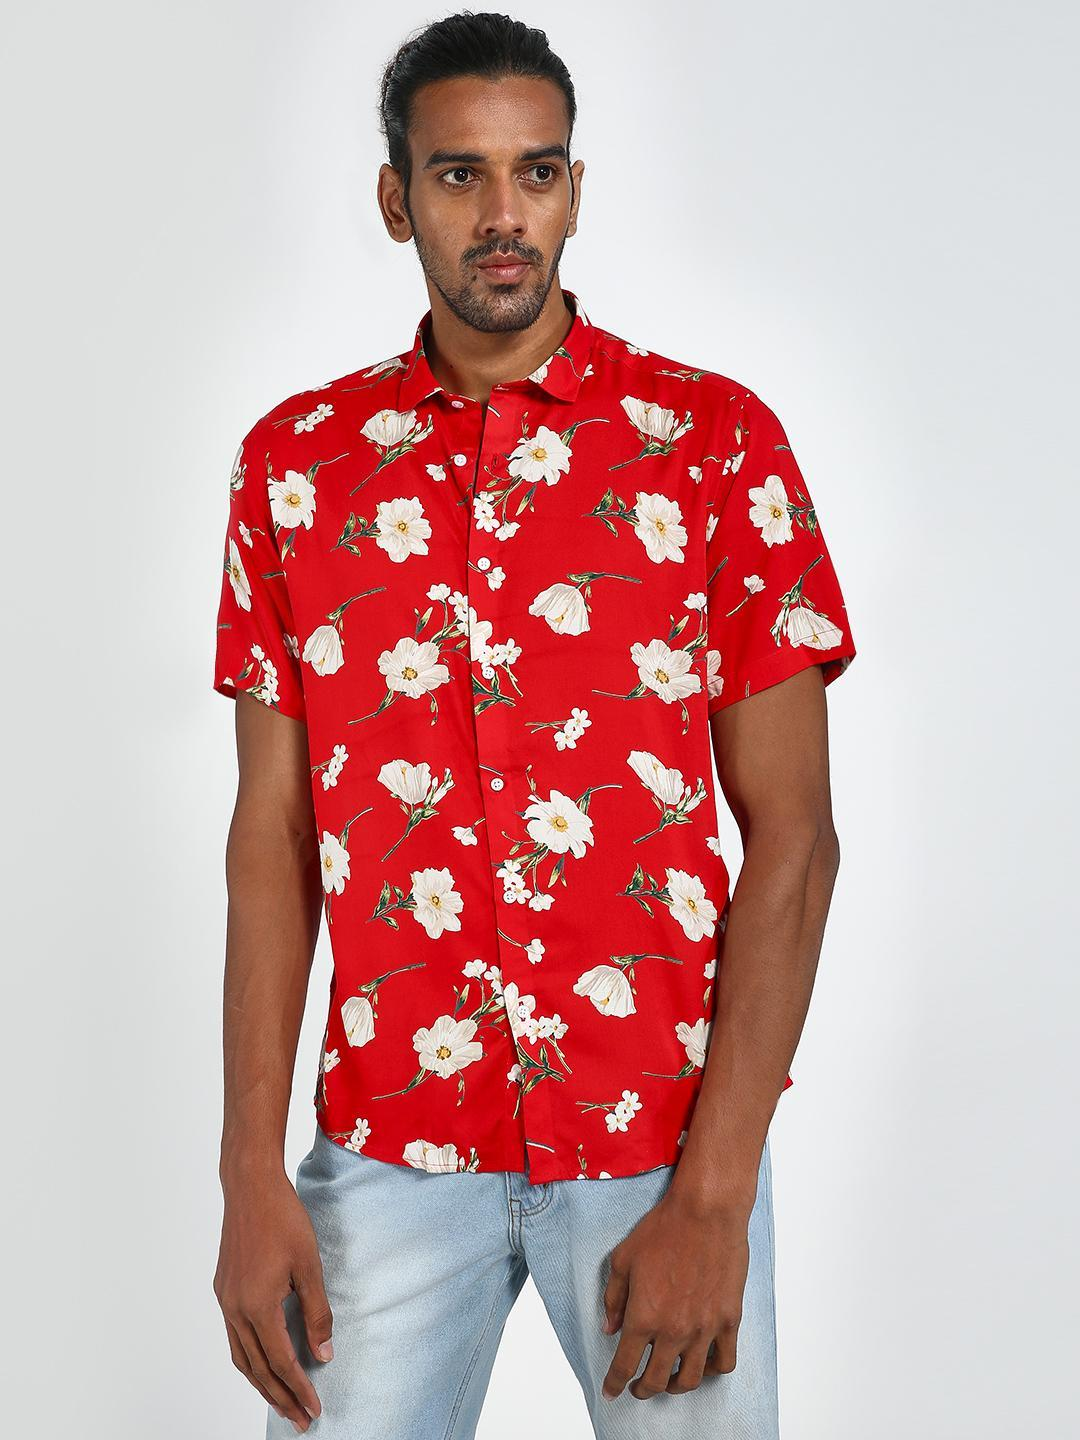 Green Hill Red Floral Print Casual Shirt 1